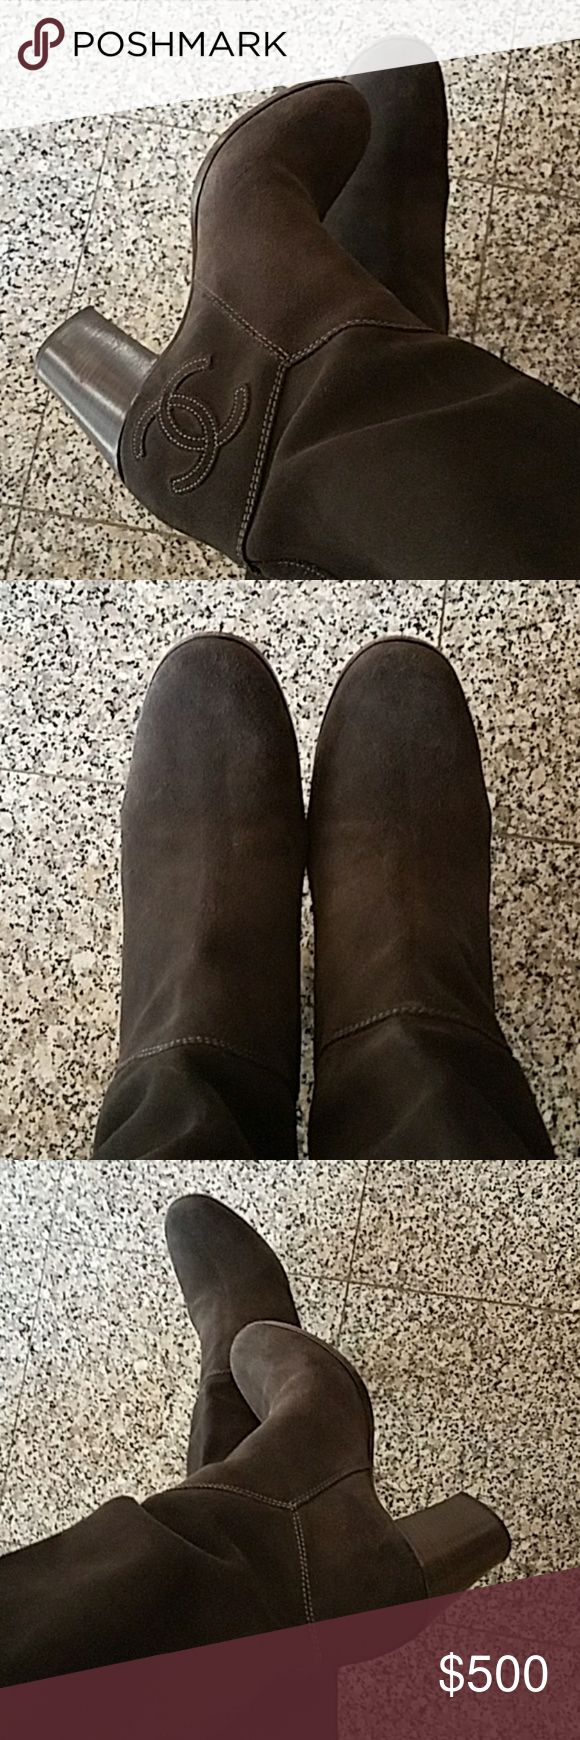 898e1a52a9bd7de04726c51b130afc35 Chaussure CHANEL : CHANEL Boots Size 39 Great condition SUEDE Authentic Chanel Boots, Size 39. In p...